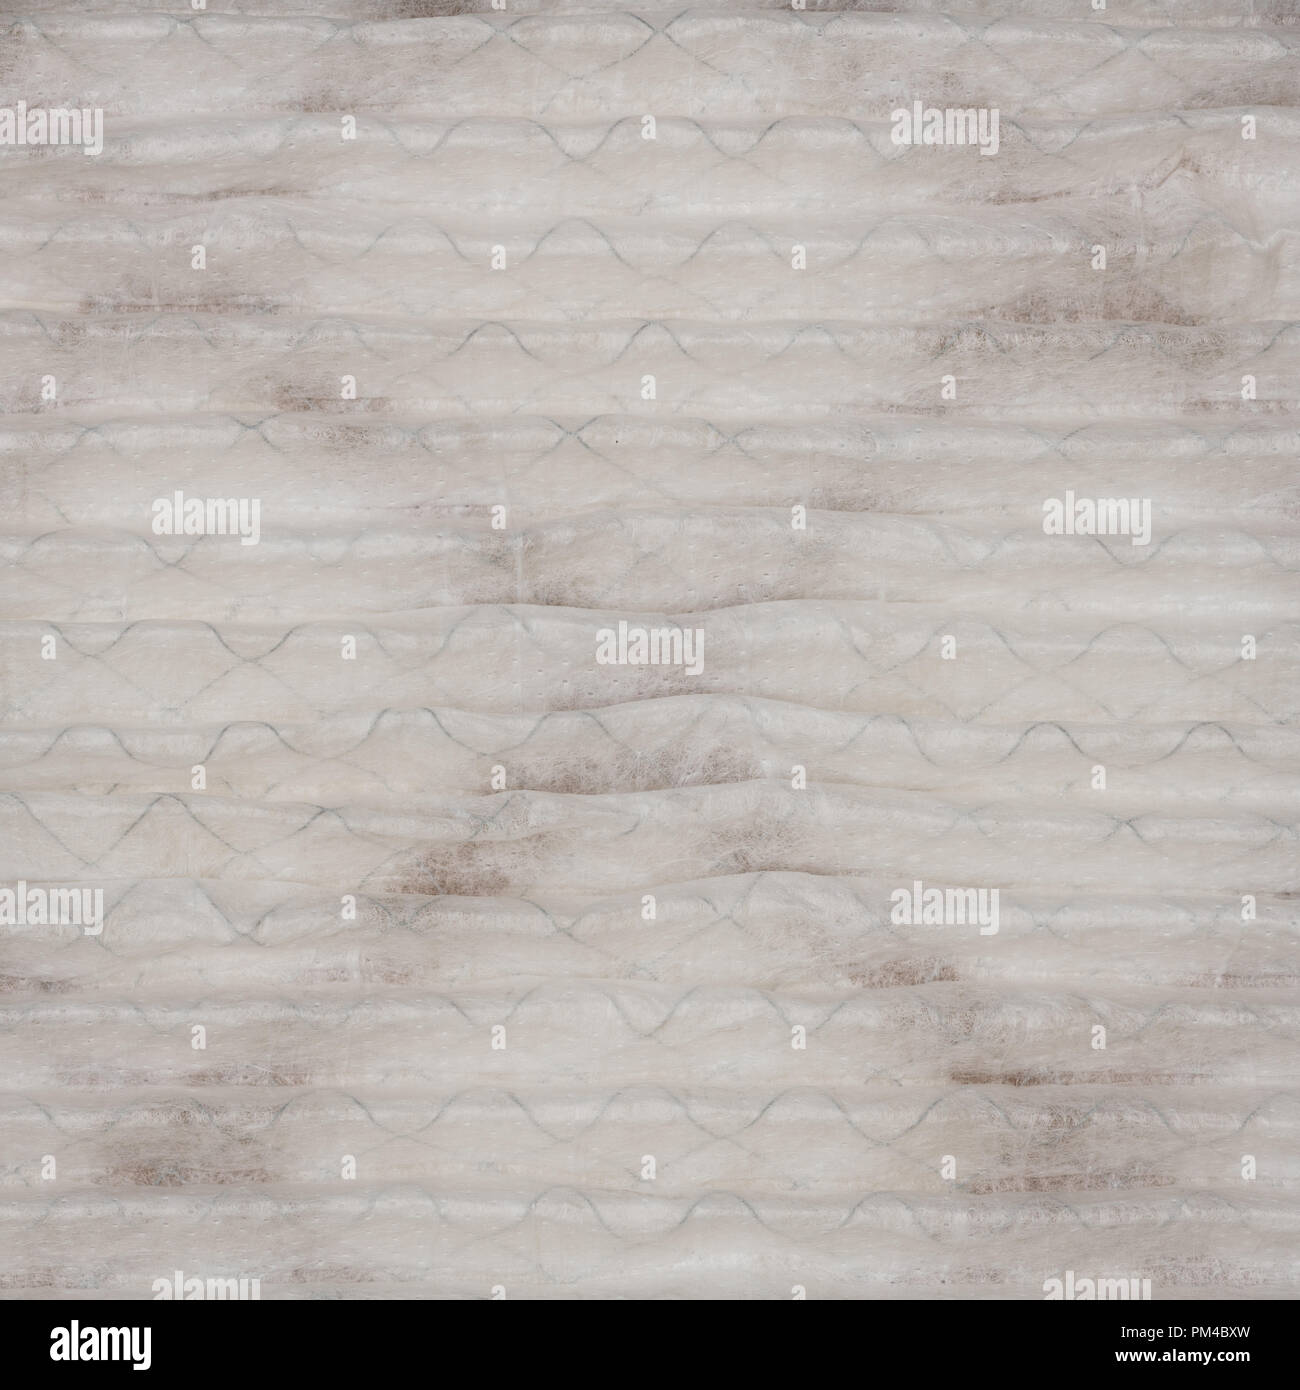 Close up pattern of a clean air furnace or air conditioning filter. - Stock Image